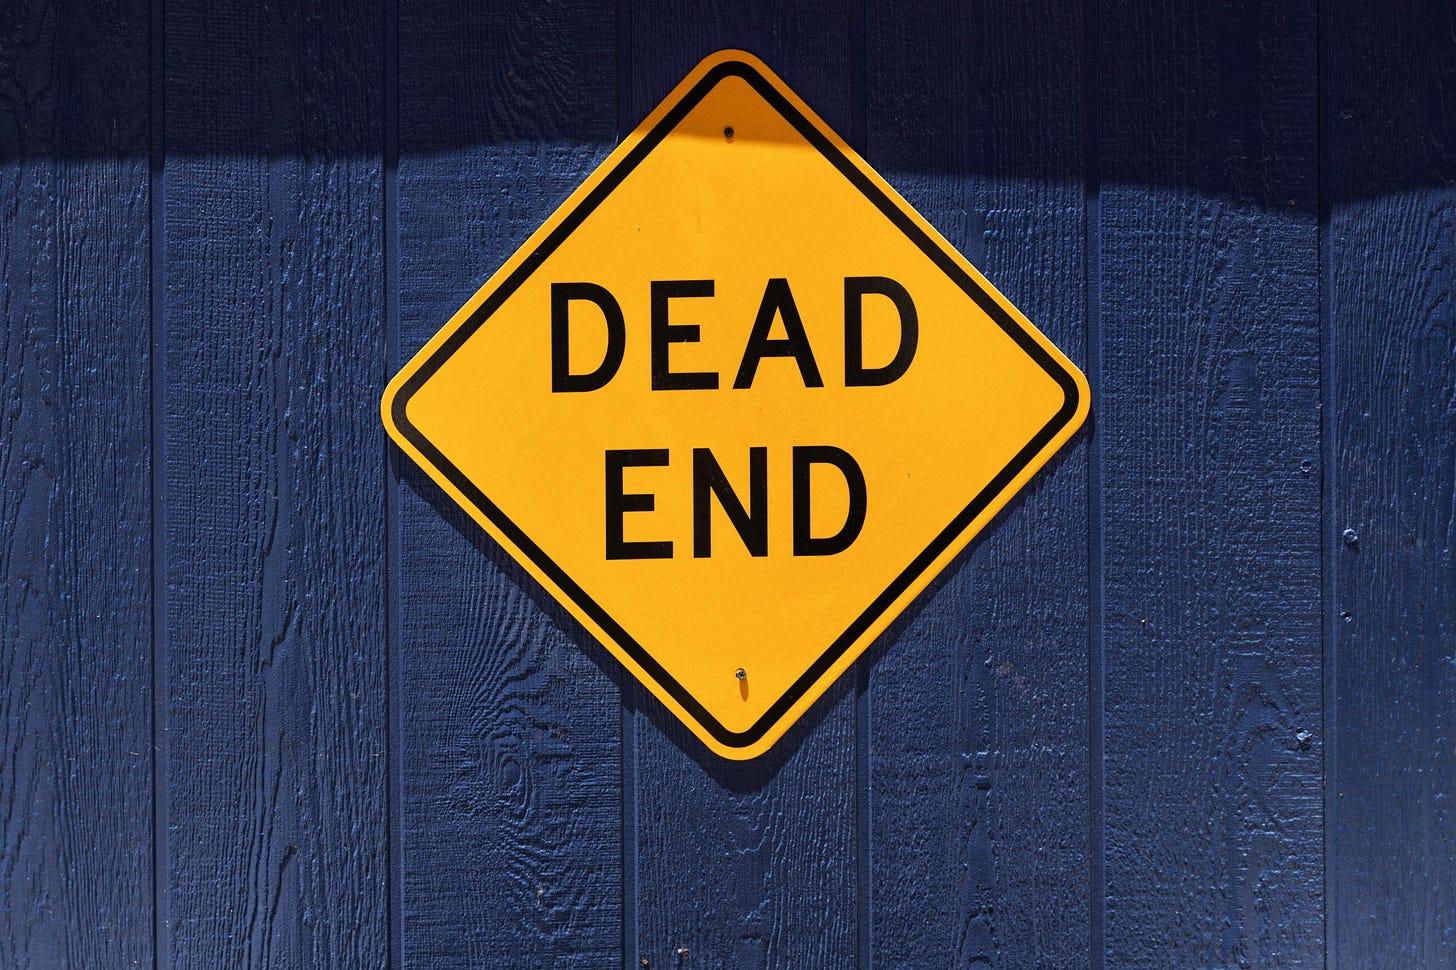 """Image of a yellow sign that says """"ead end"""" mounted on a blue wall, for article by Larry G. Maguire"""